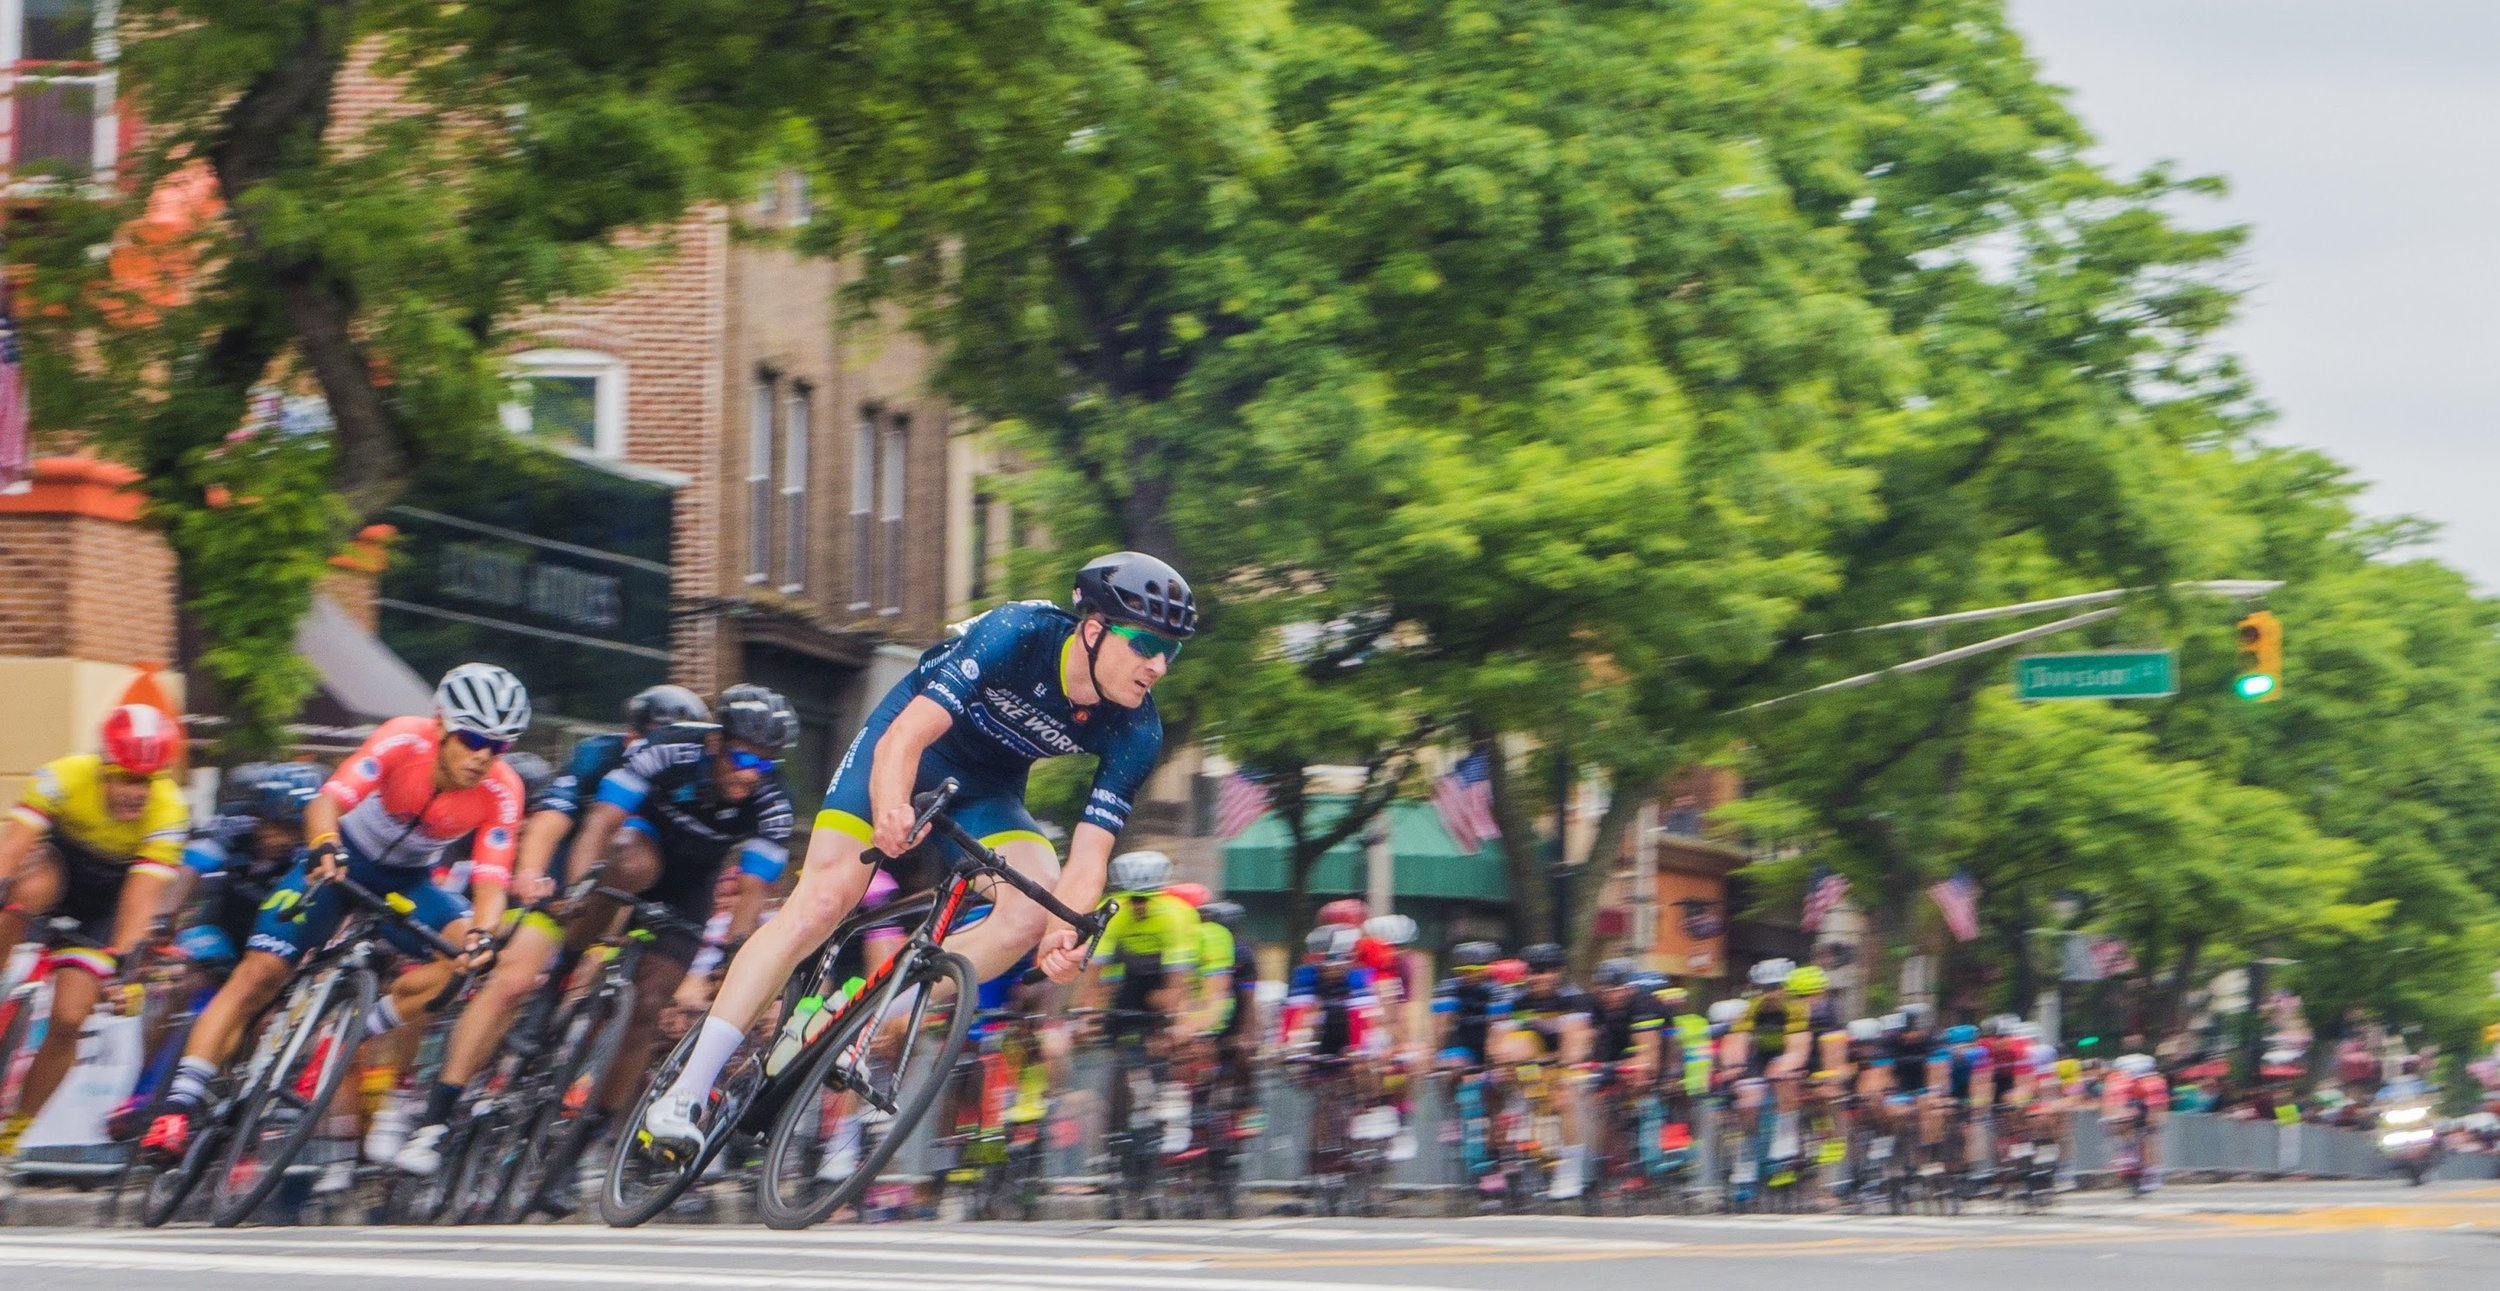 Jason Wood of Doylestown Bike Works leads the Pro/ 1 group into the first turn of the Tour of Somerville. Photo by Ron Short